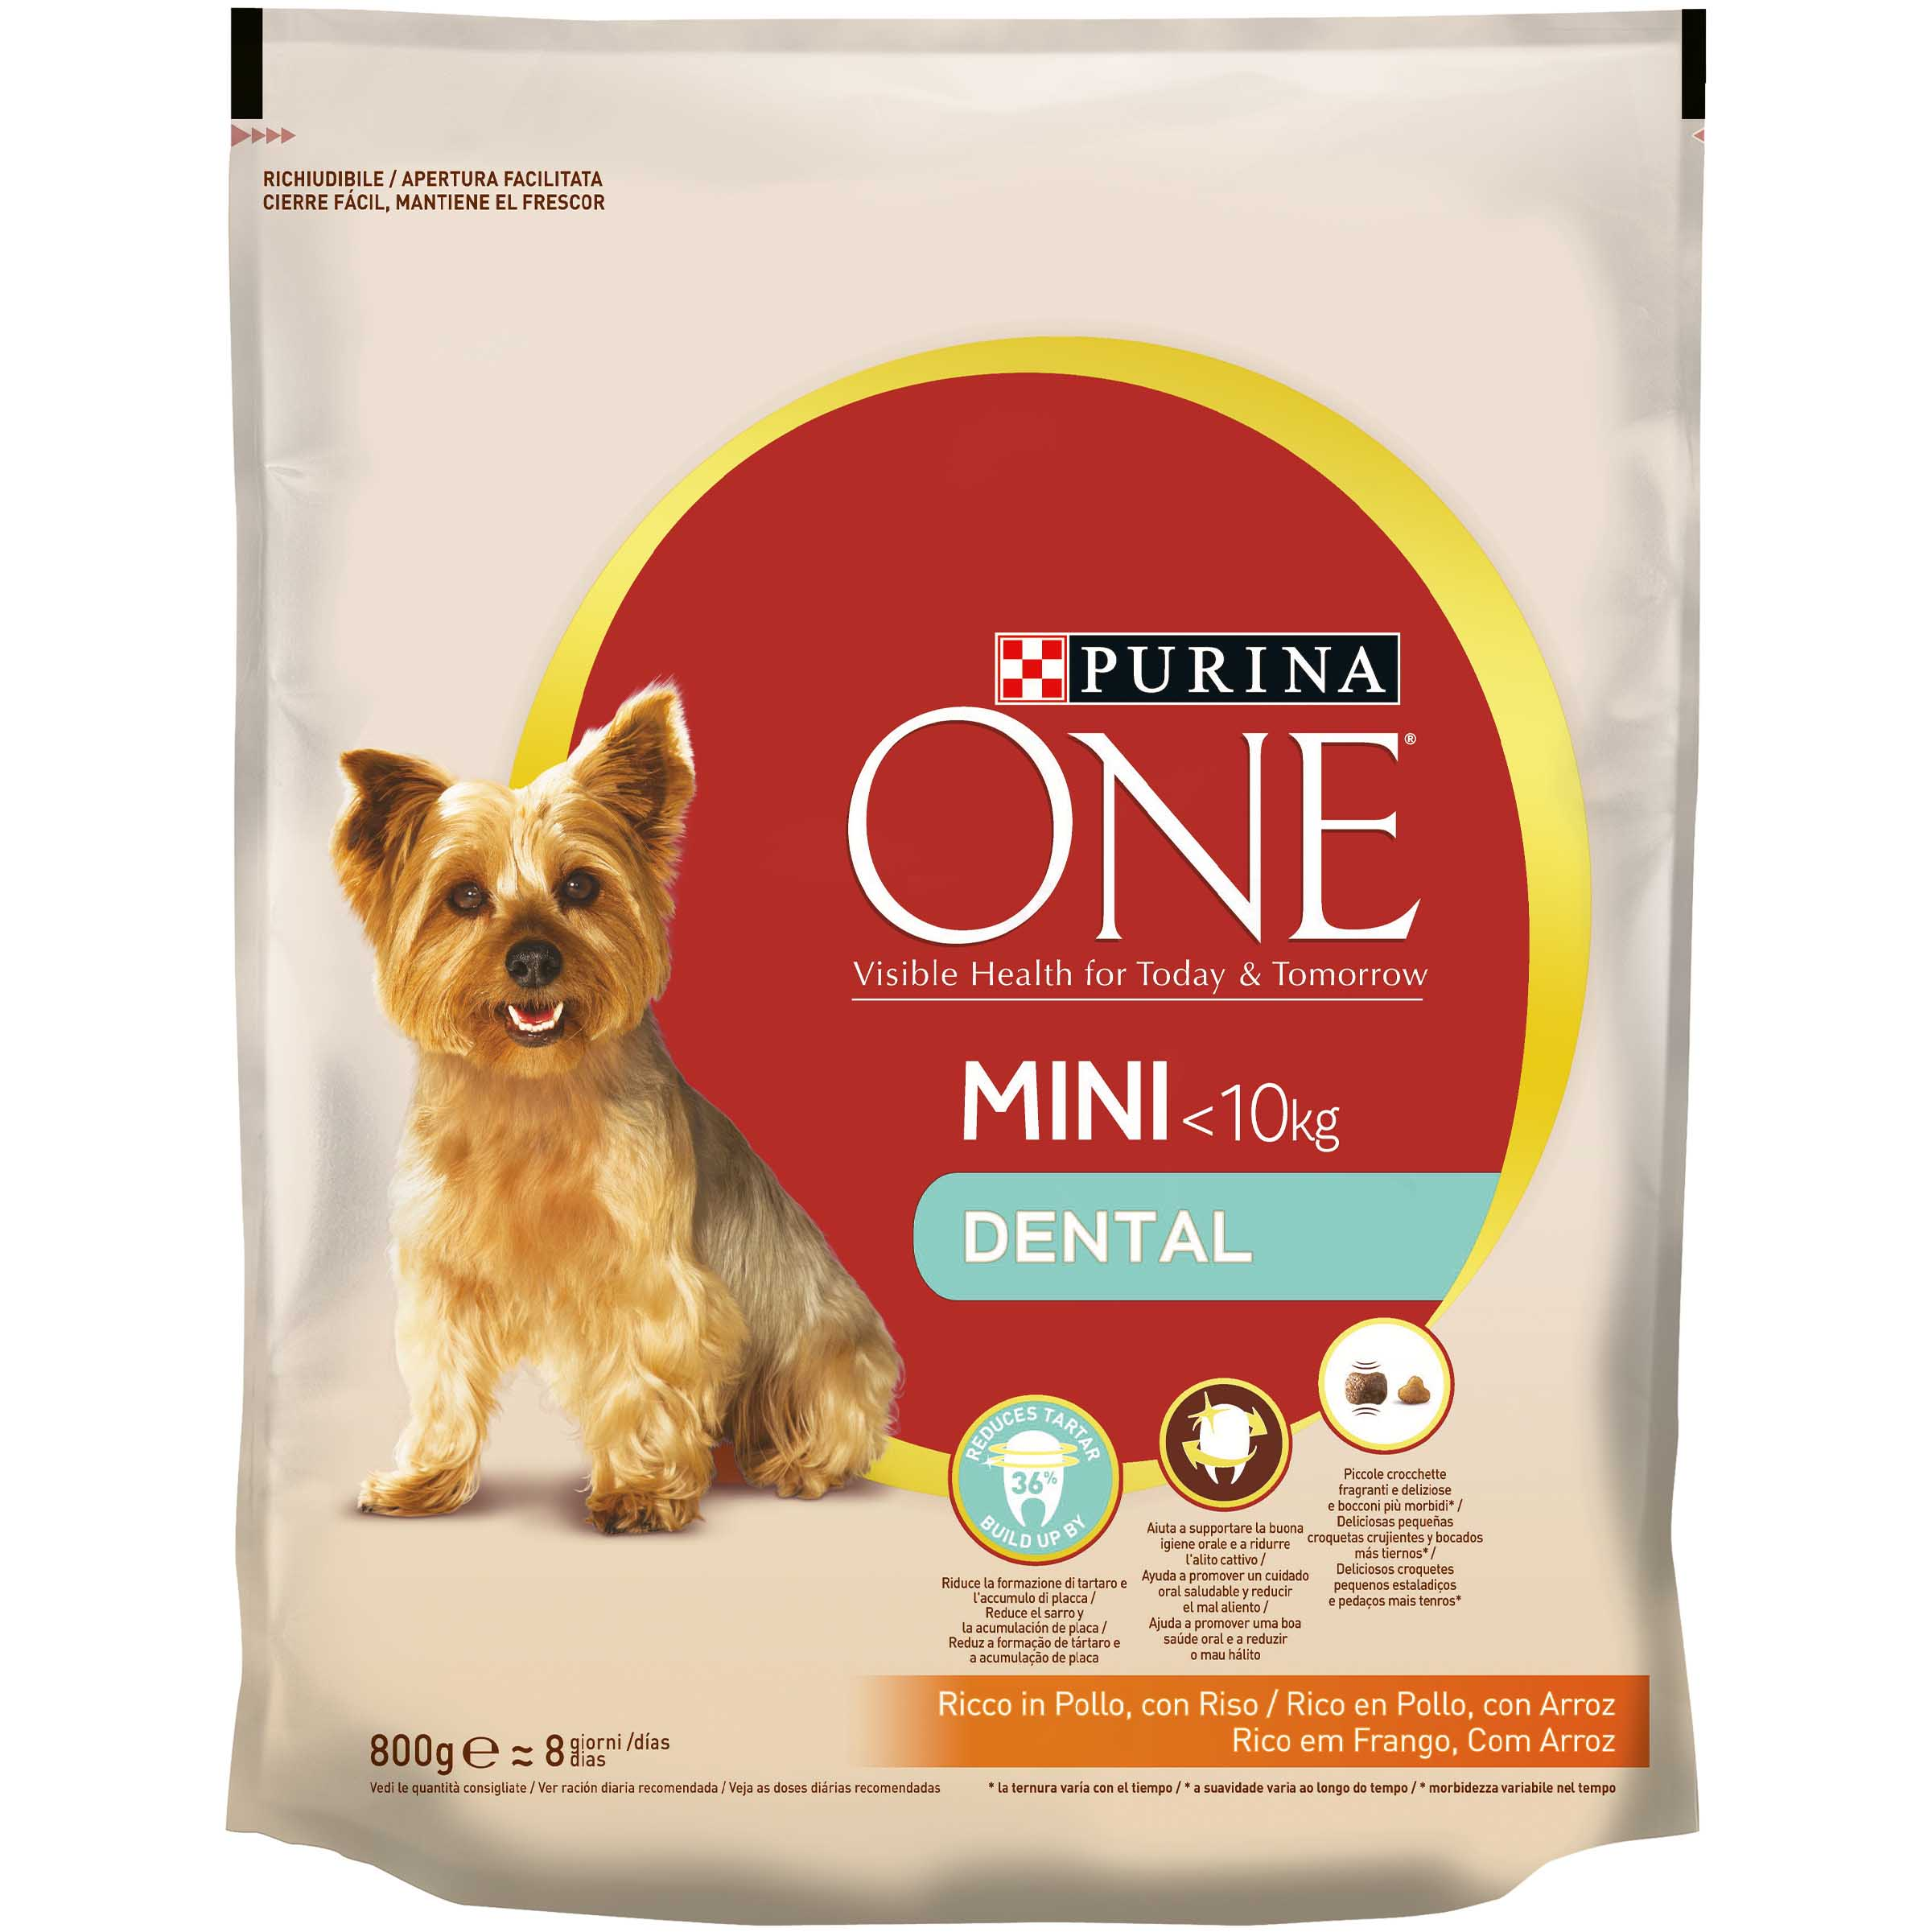 Purina One dental alimento perro adulto raza mini cuidado dental de 800g. en paquete